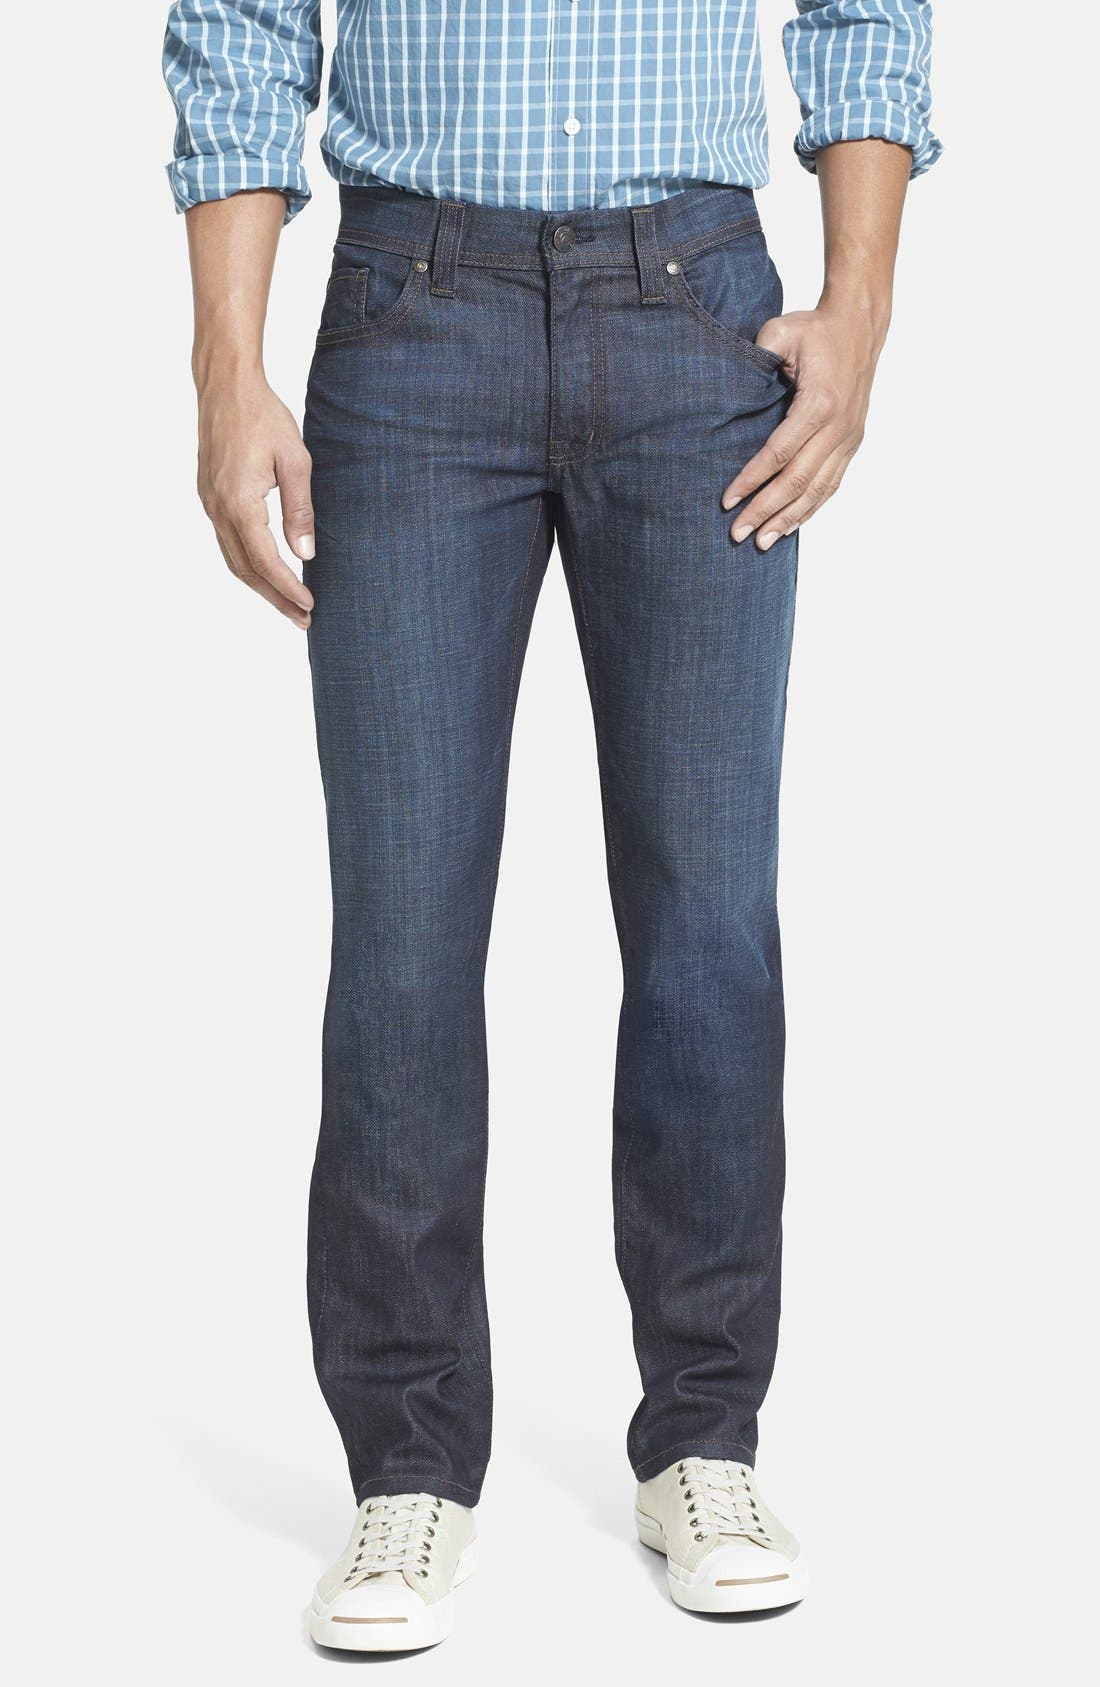 Alternate Image 1 Selected - Fidelity Denim 'Jimmy' Slim Straight Leg Jeans (Harvard)